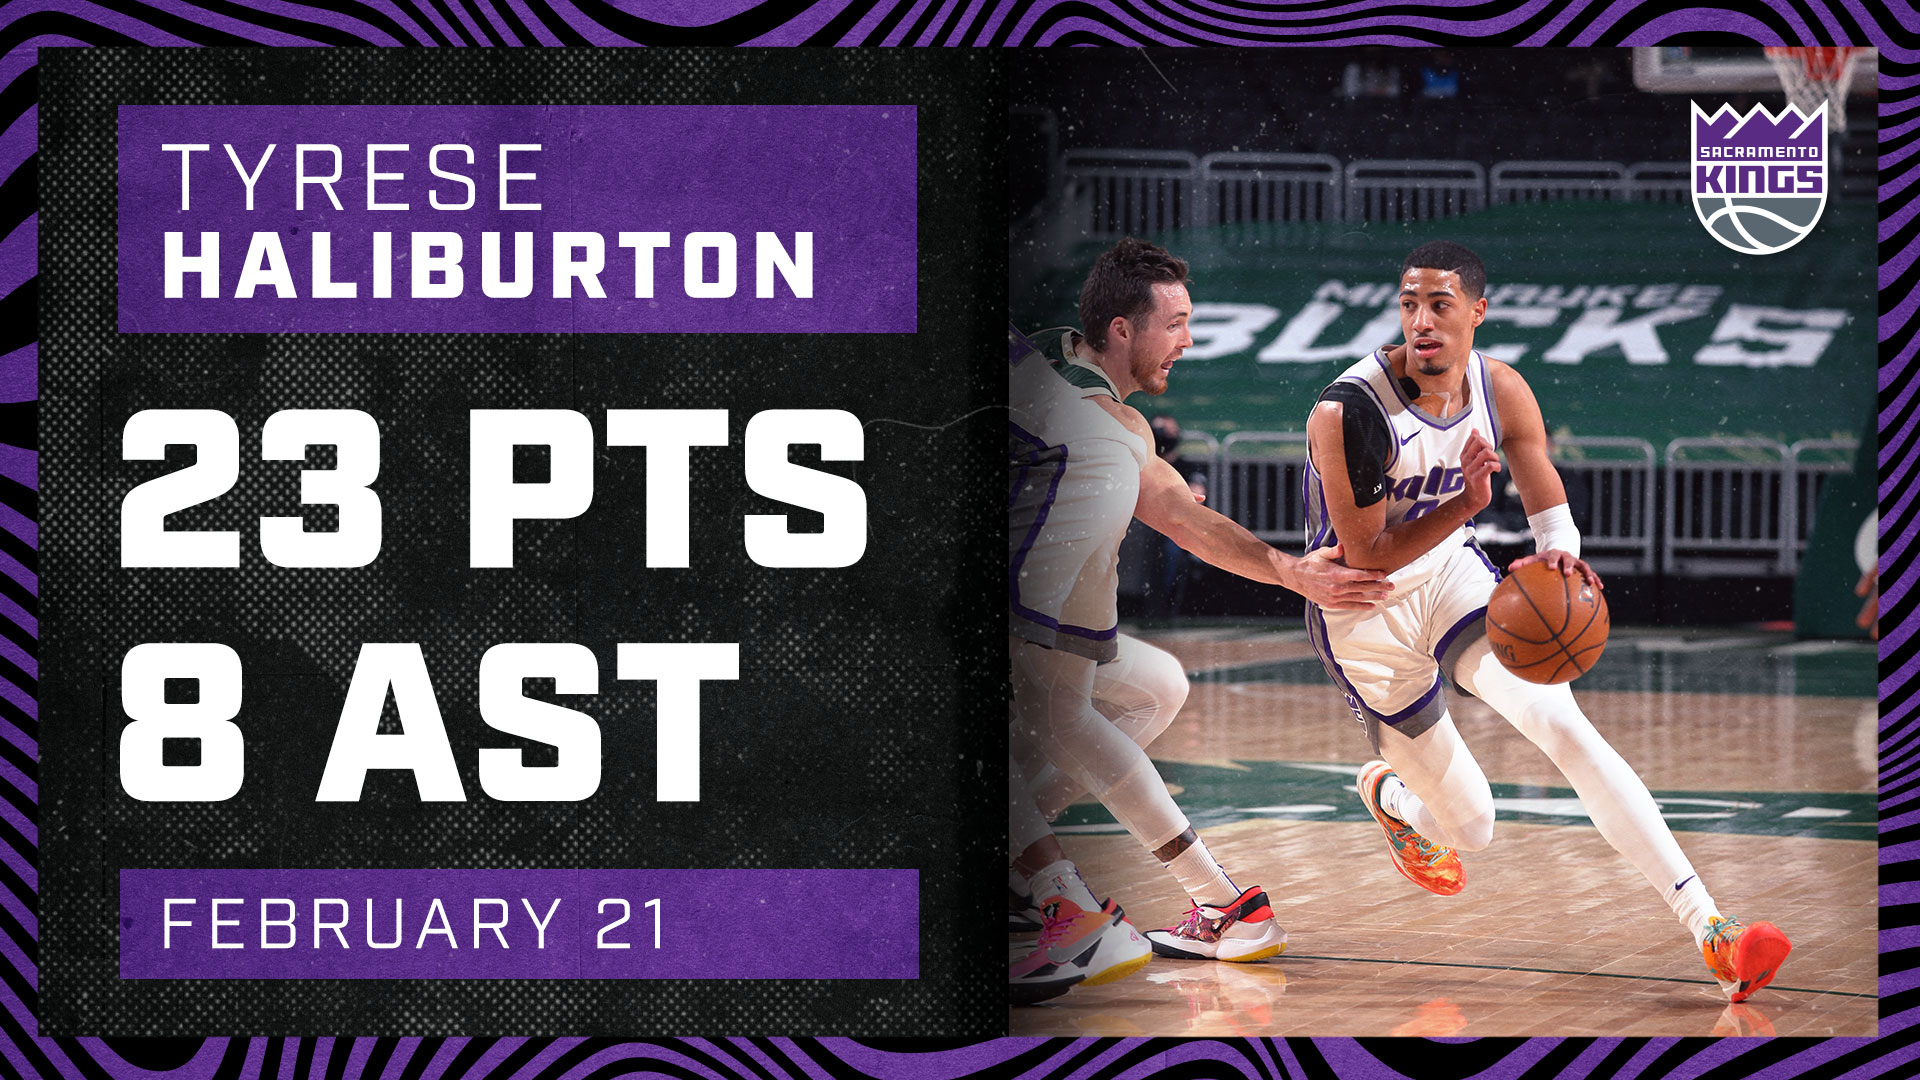 Tyrese Haliburton Shows Range Against MIL | Kings vs Bucks 2.21.21